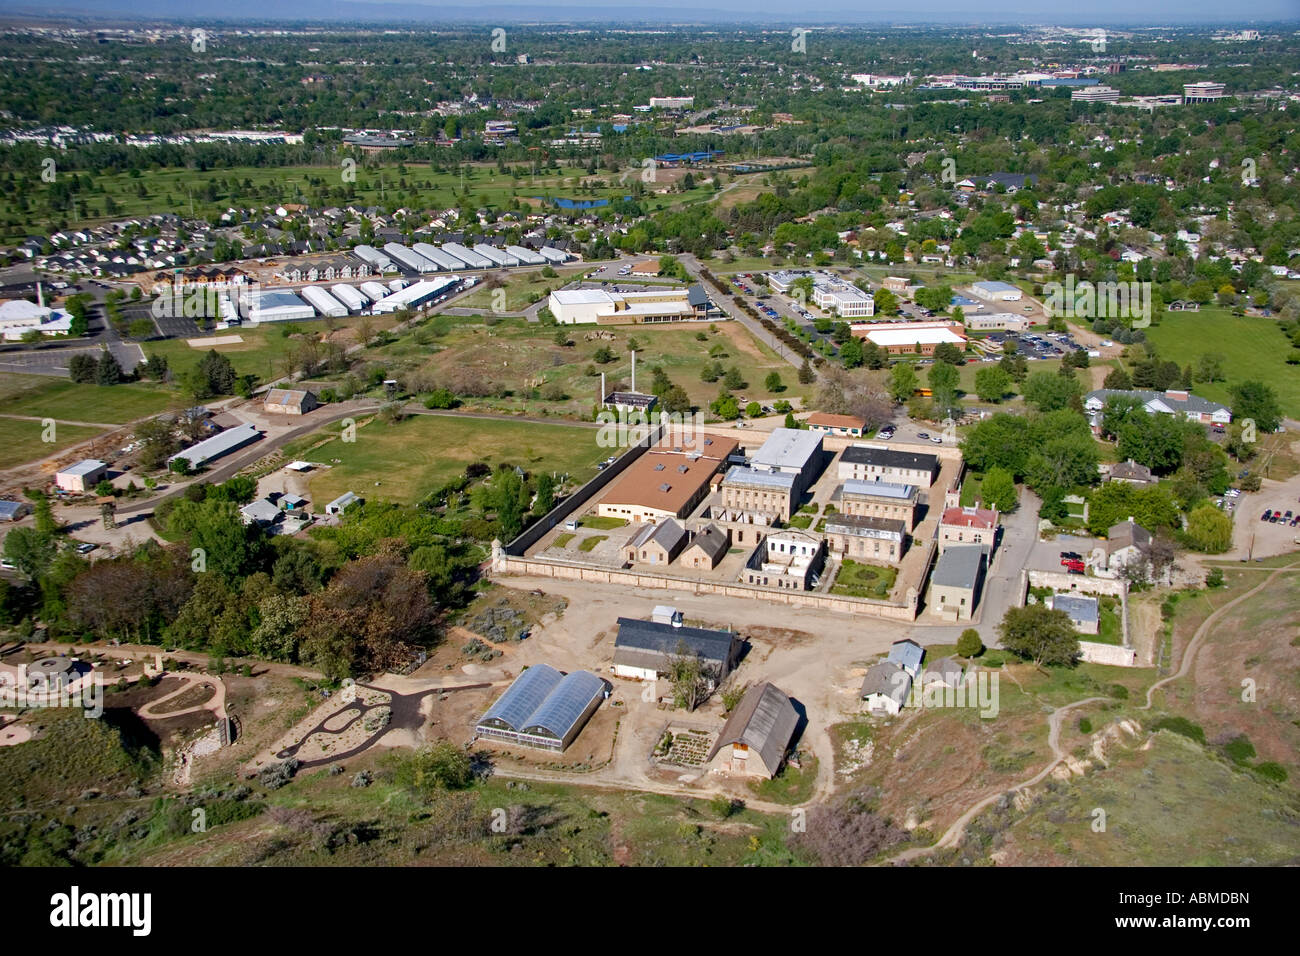 Aerial view of the Old Idaho Penitentiary in Boise Idaho - Stock Image